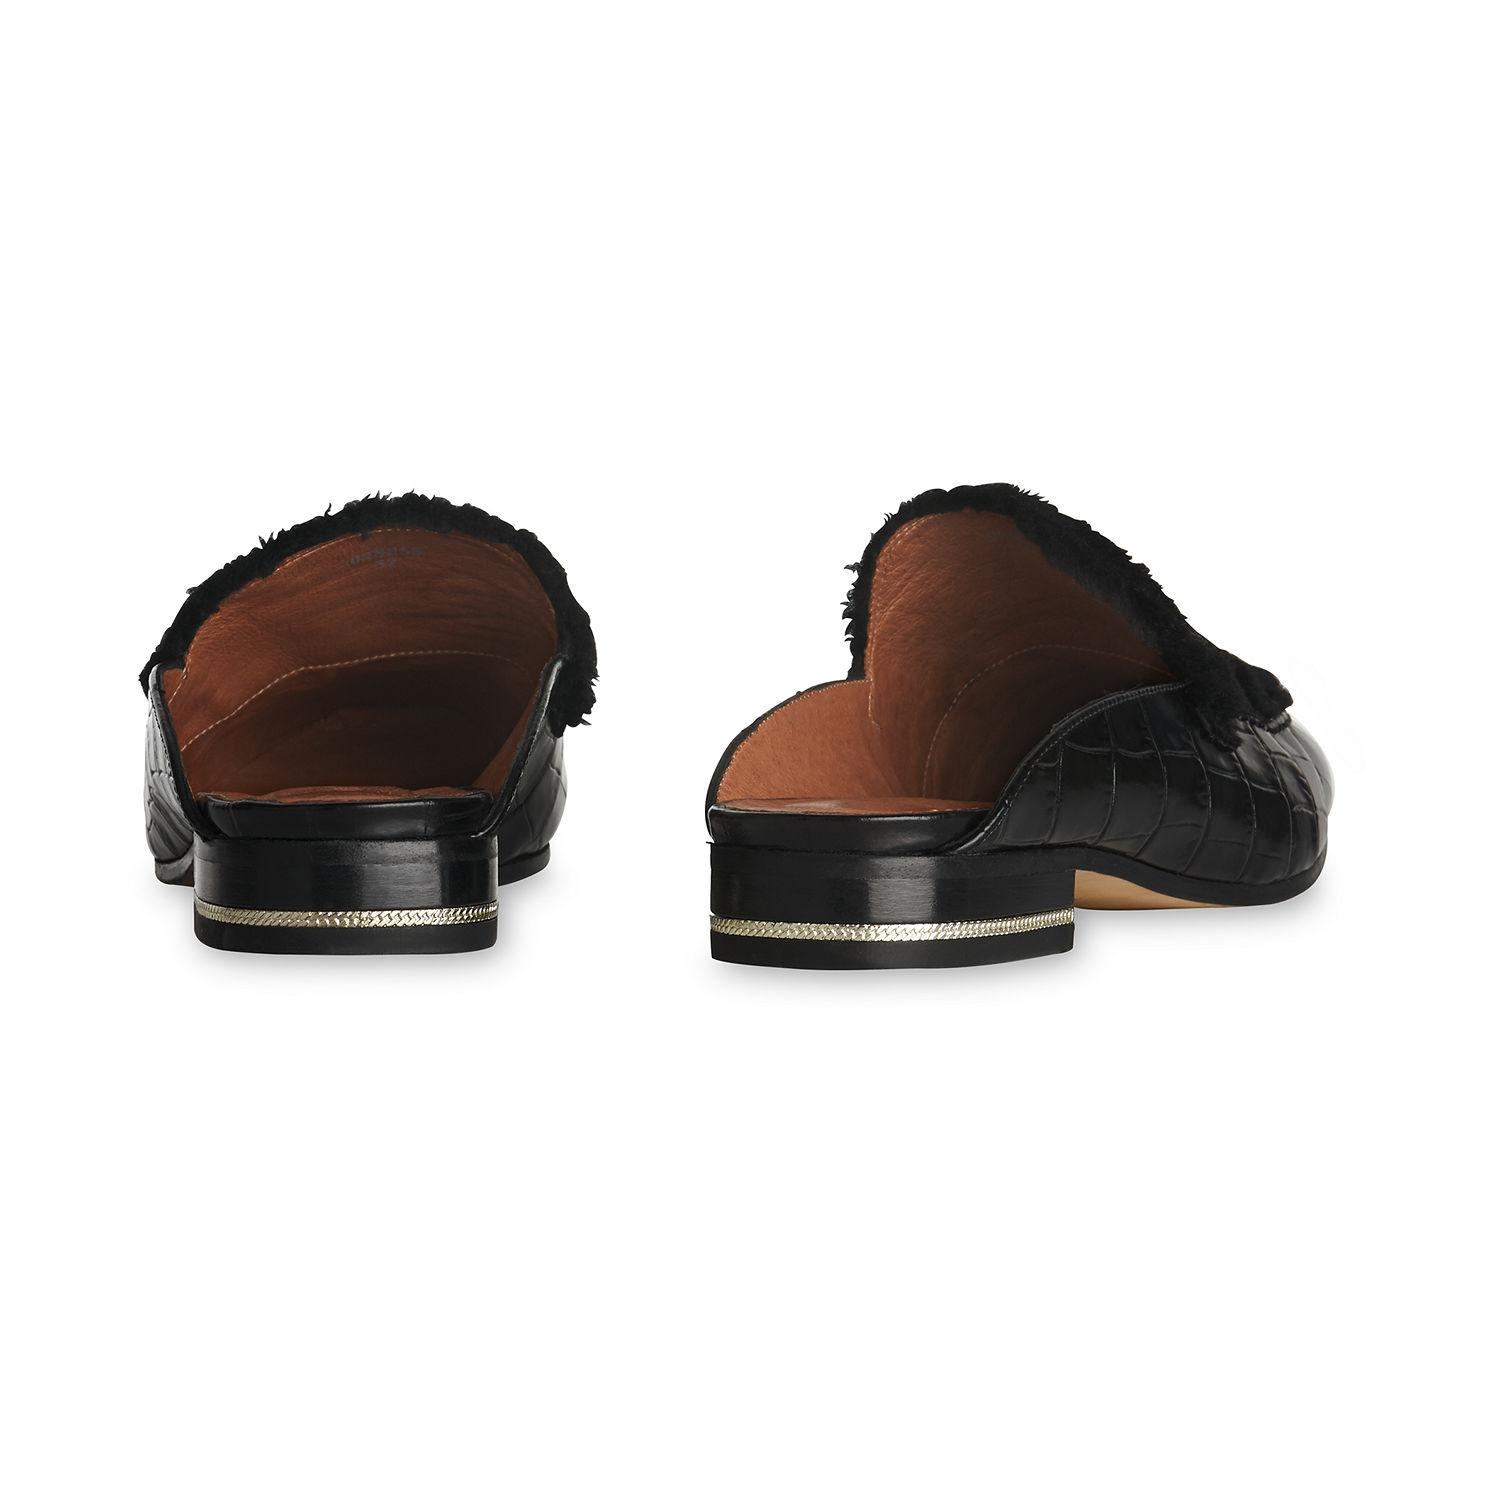 ac1f84347f6 Lyst - Whistles Shearling Lister Backless Shoe in Black